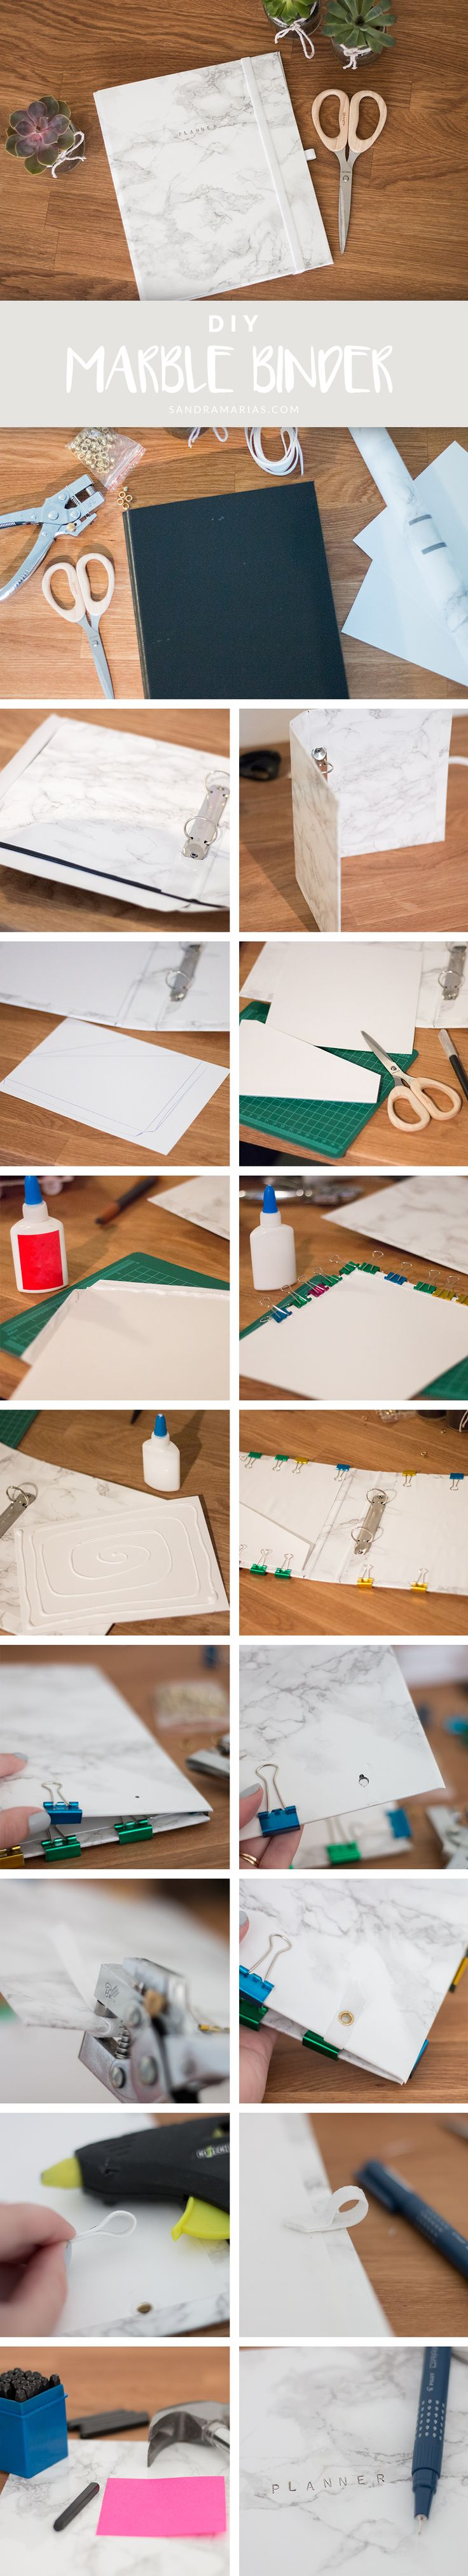 DIY Marble Binder | Make your own planner | Sandramarias.com